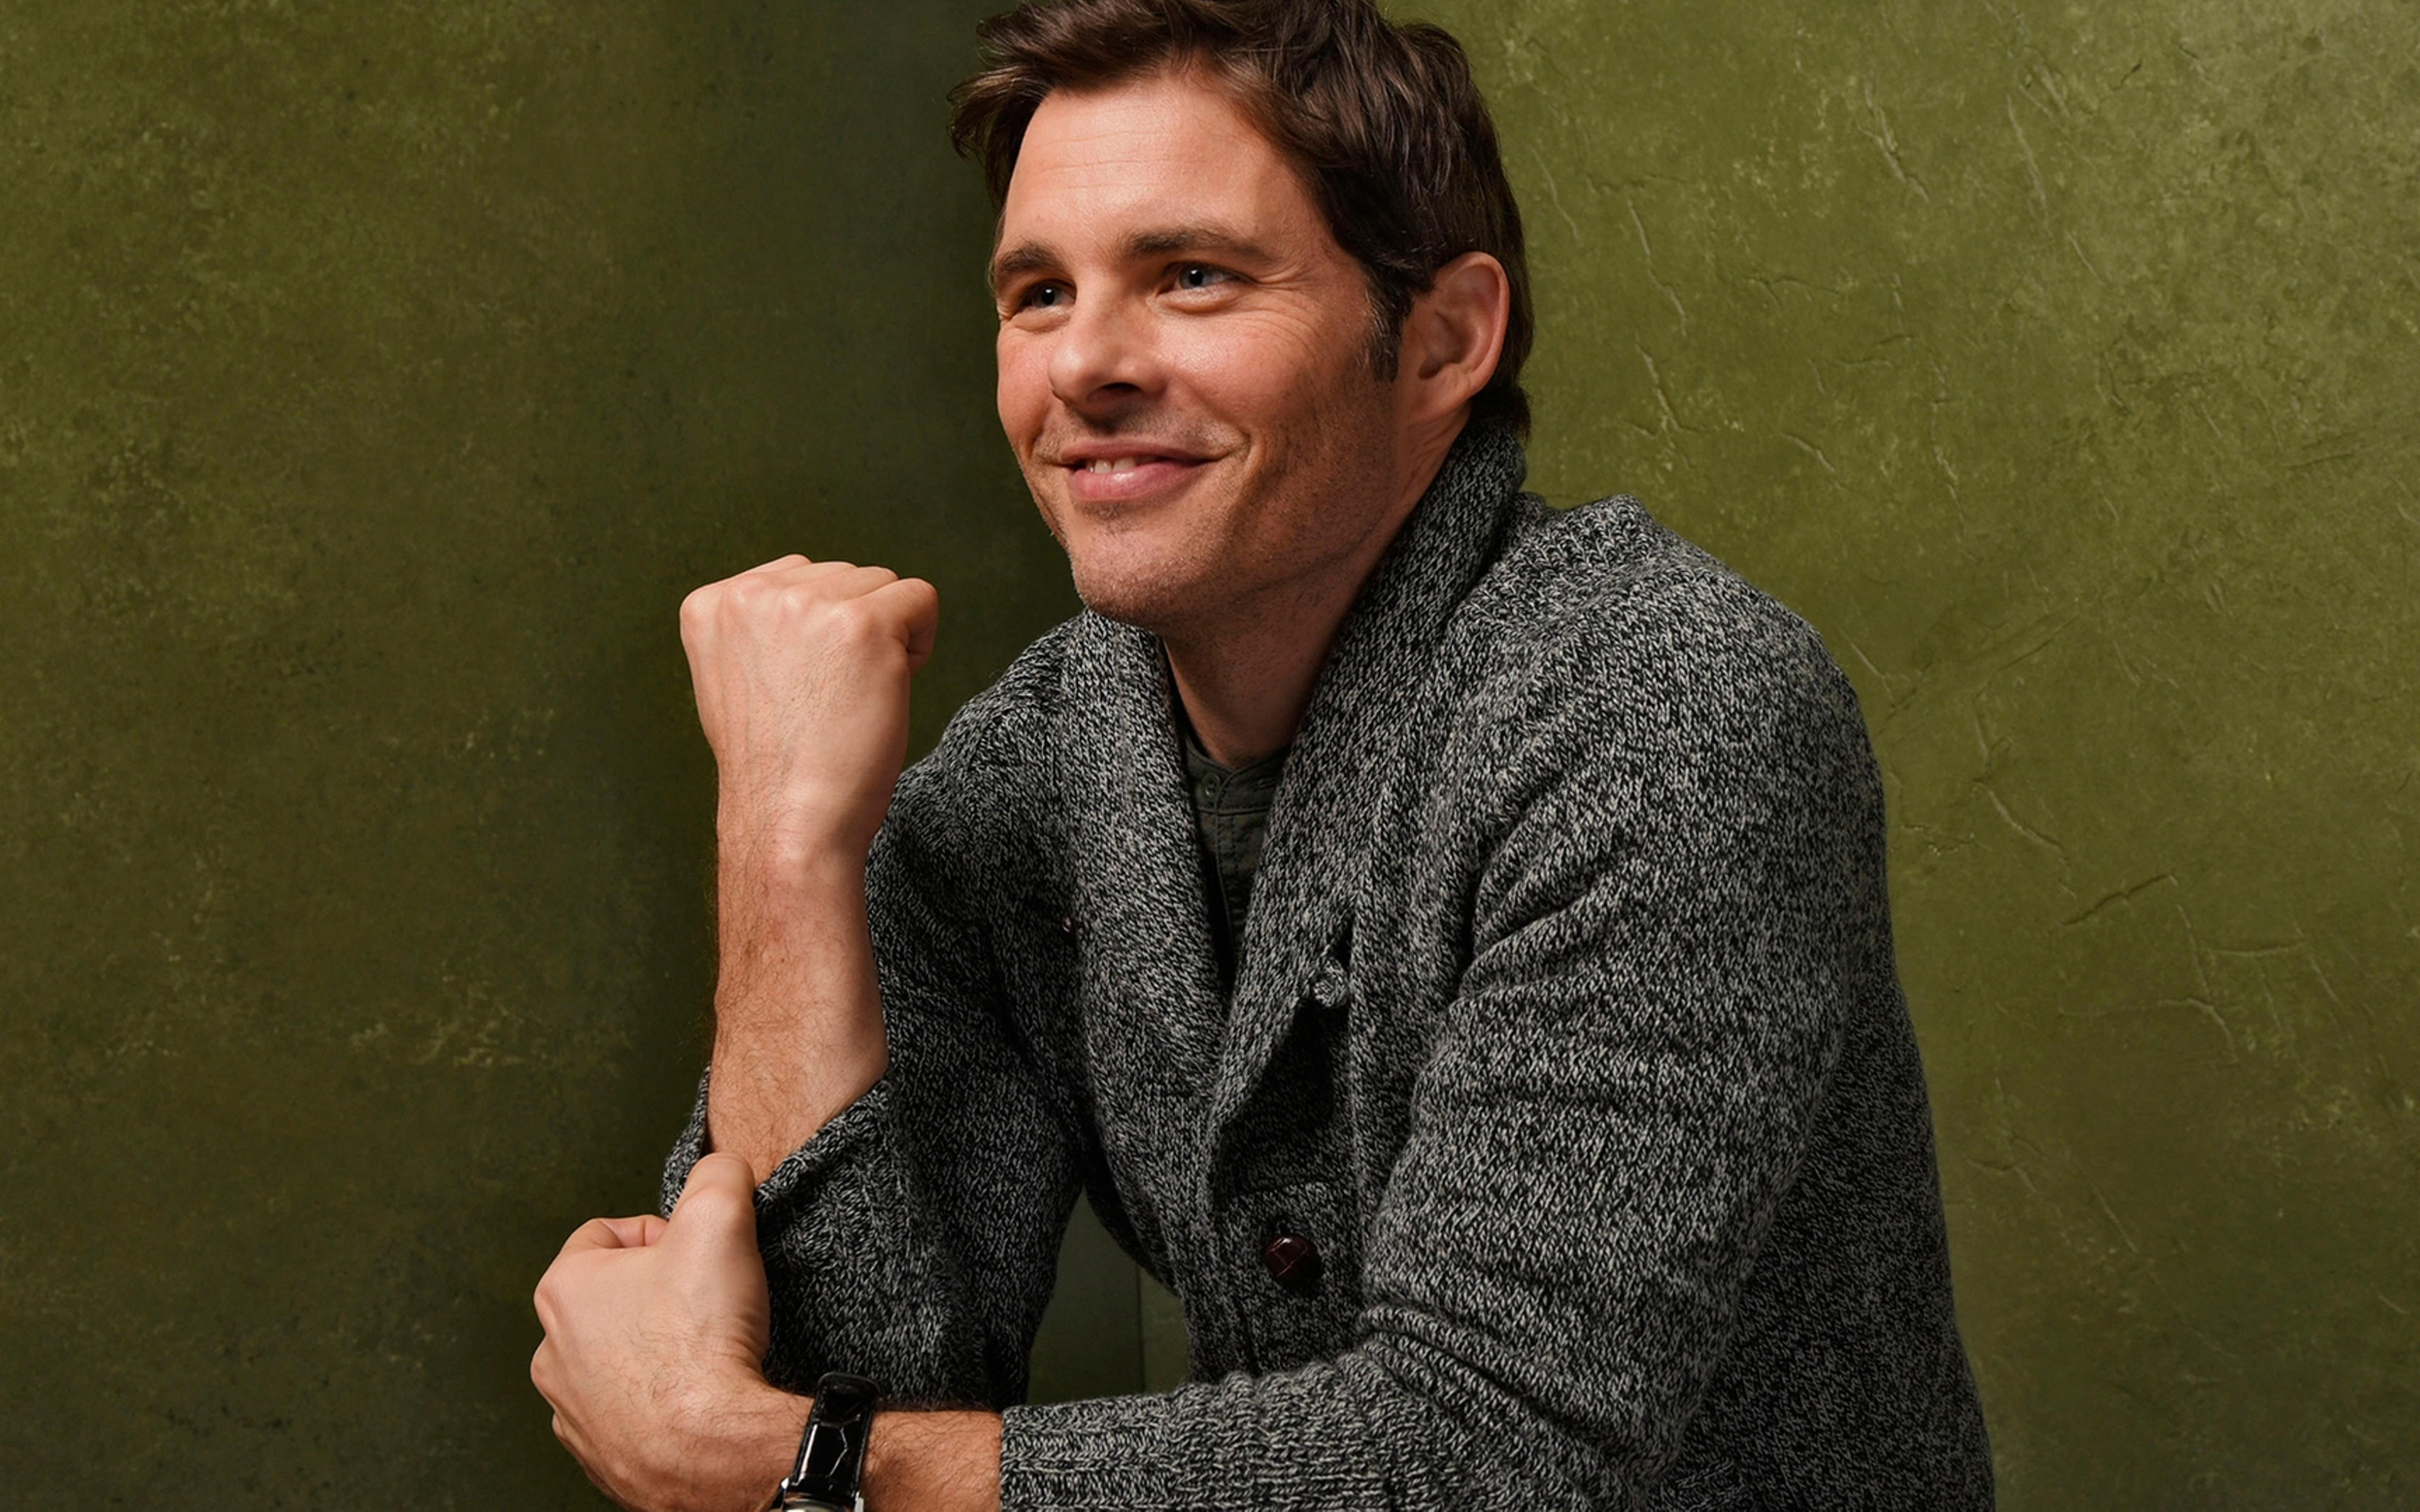 the actor james marsden with a smile on face wallpaper download